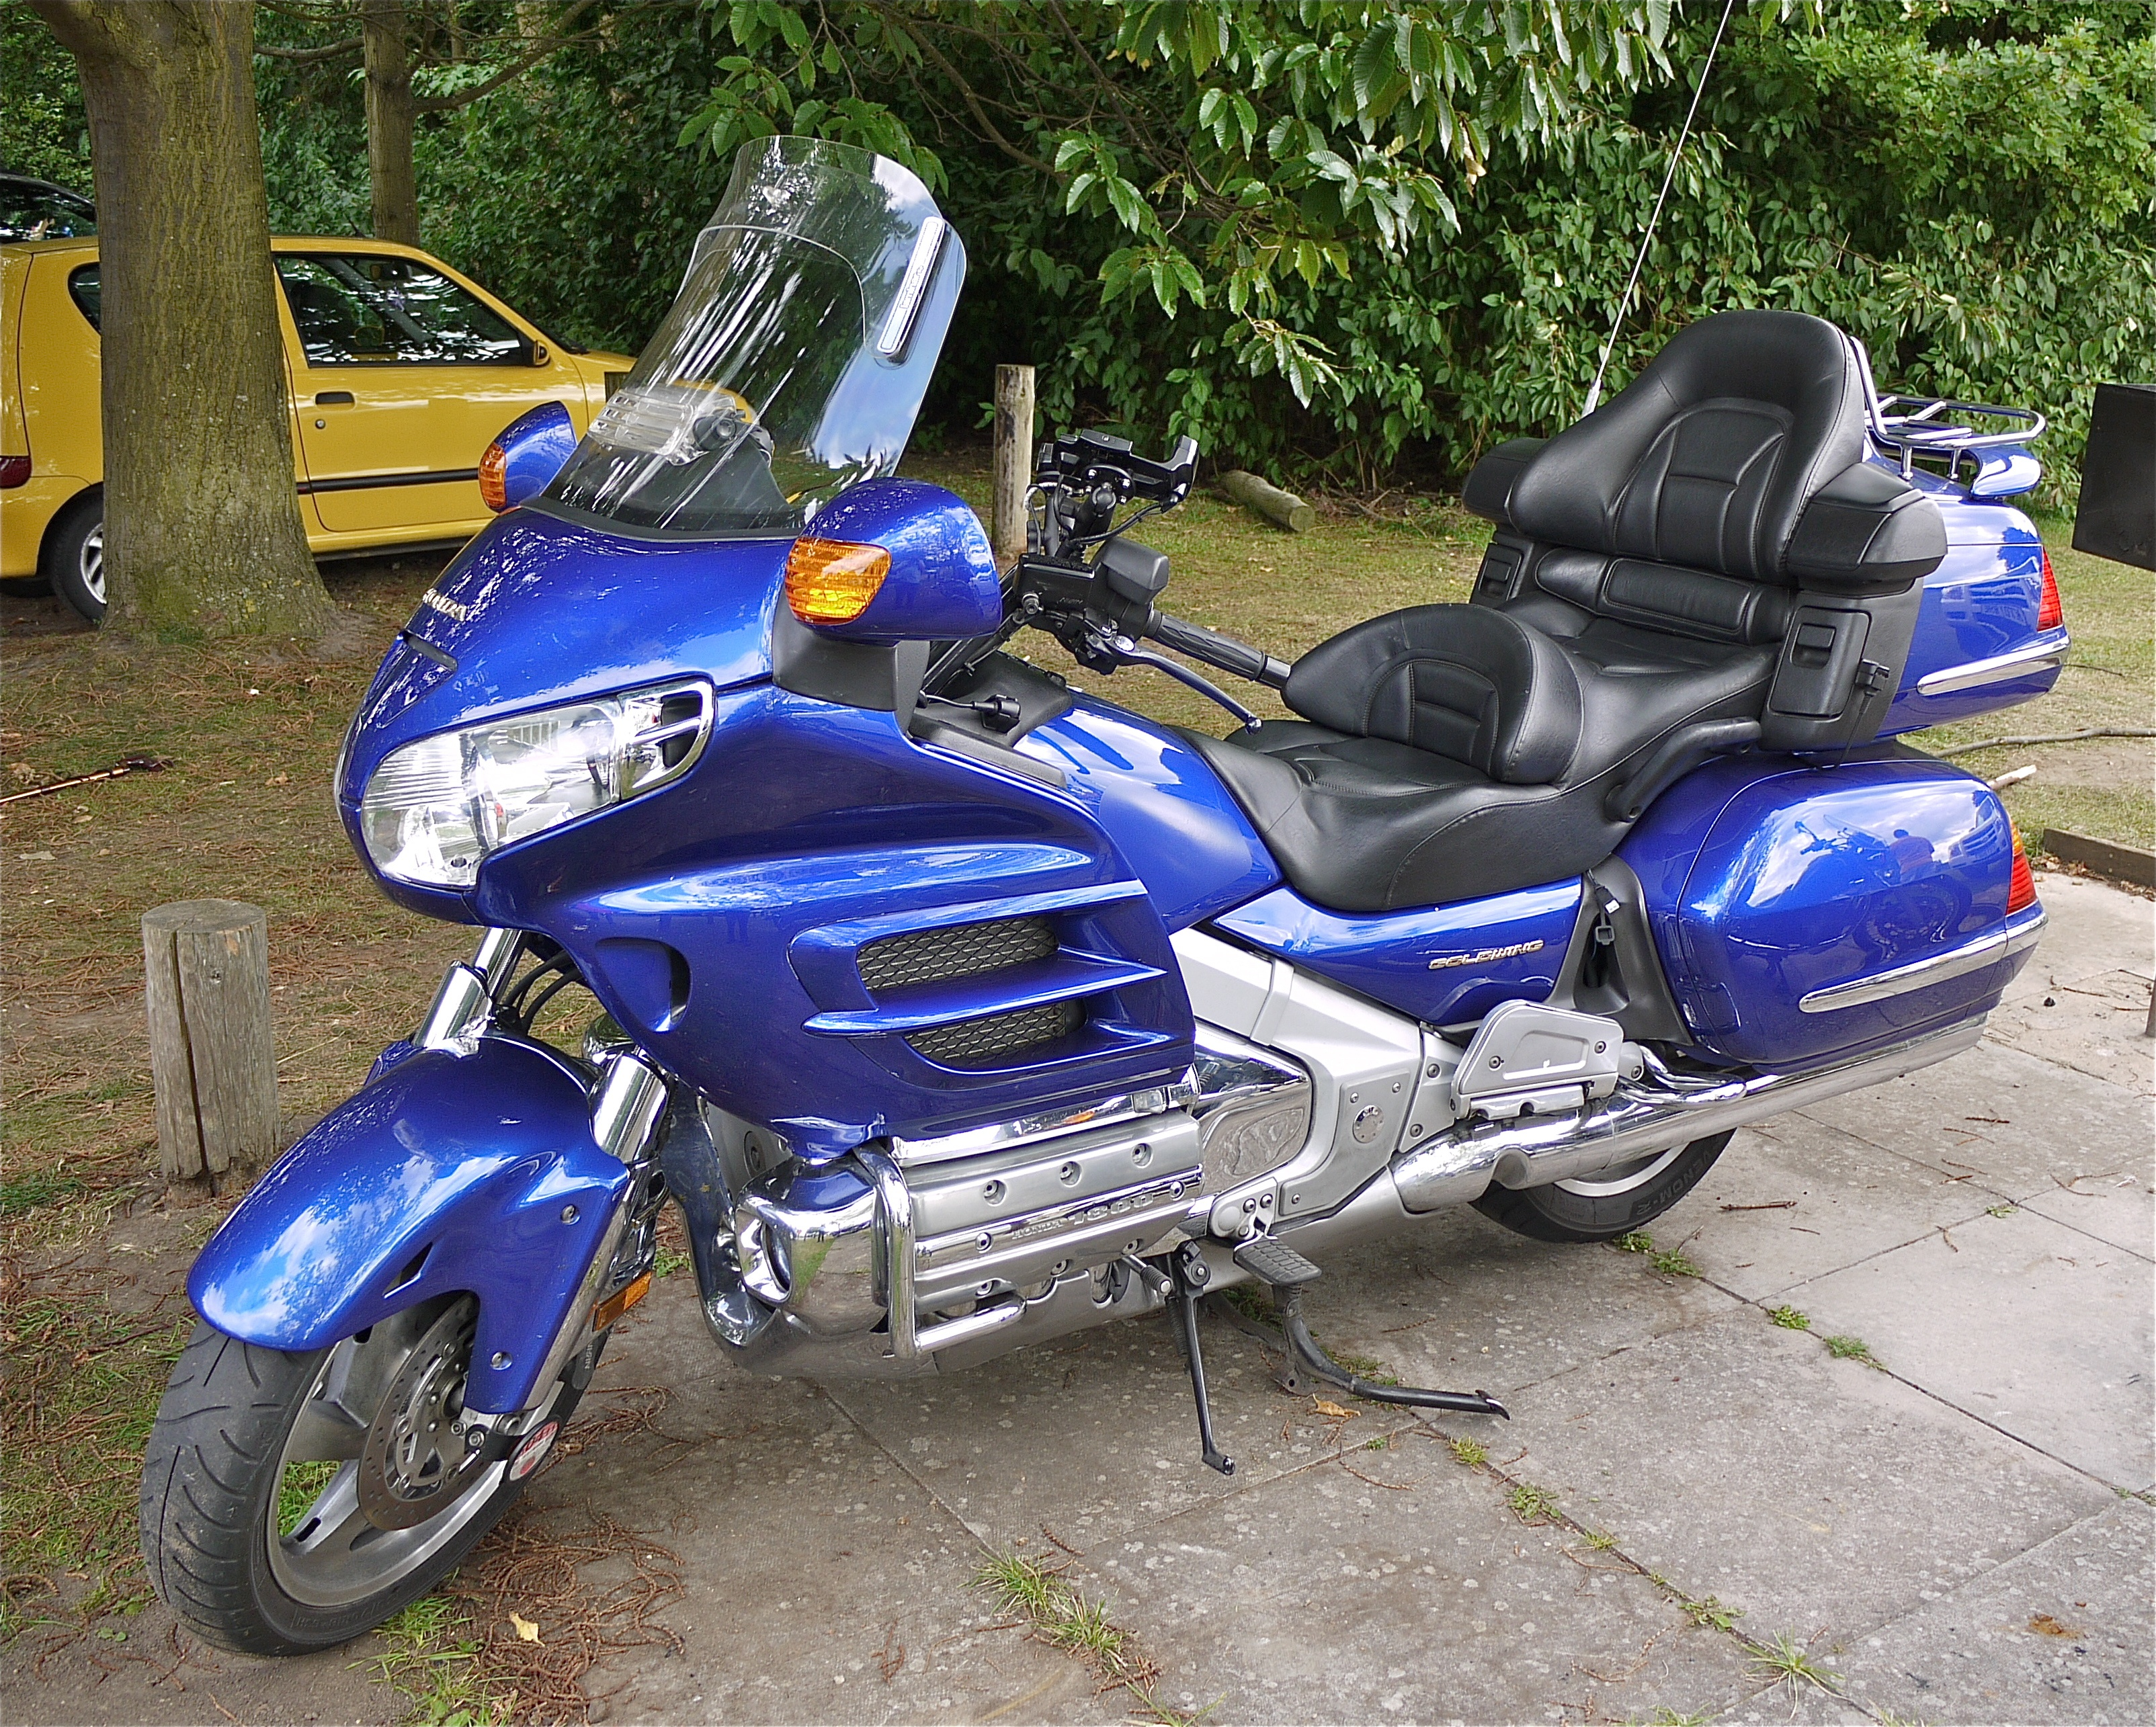 Honda GL 1800 Gold Wing 2004 images #82715